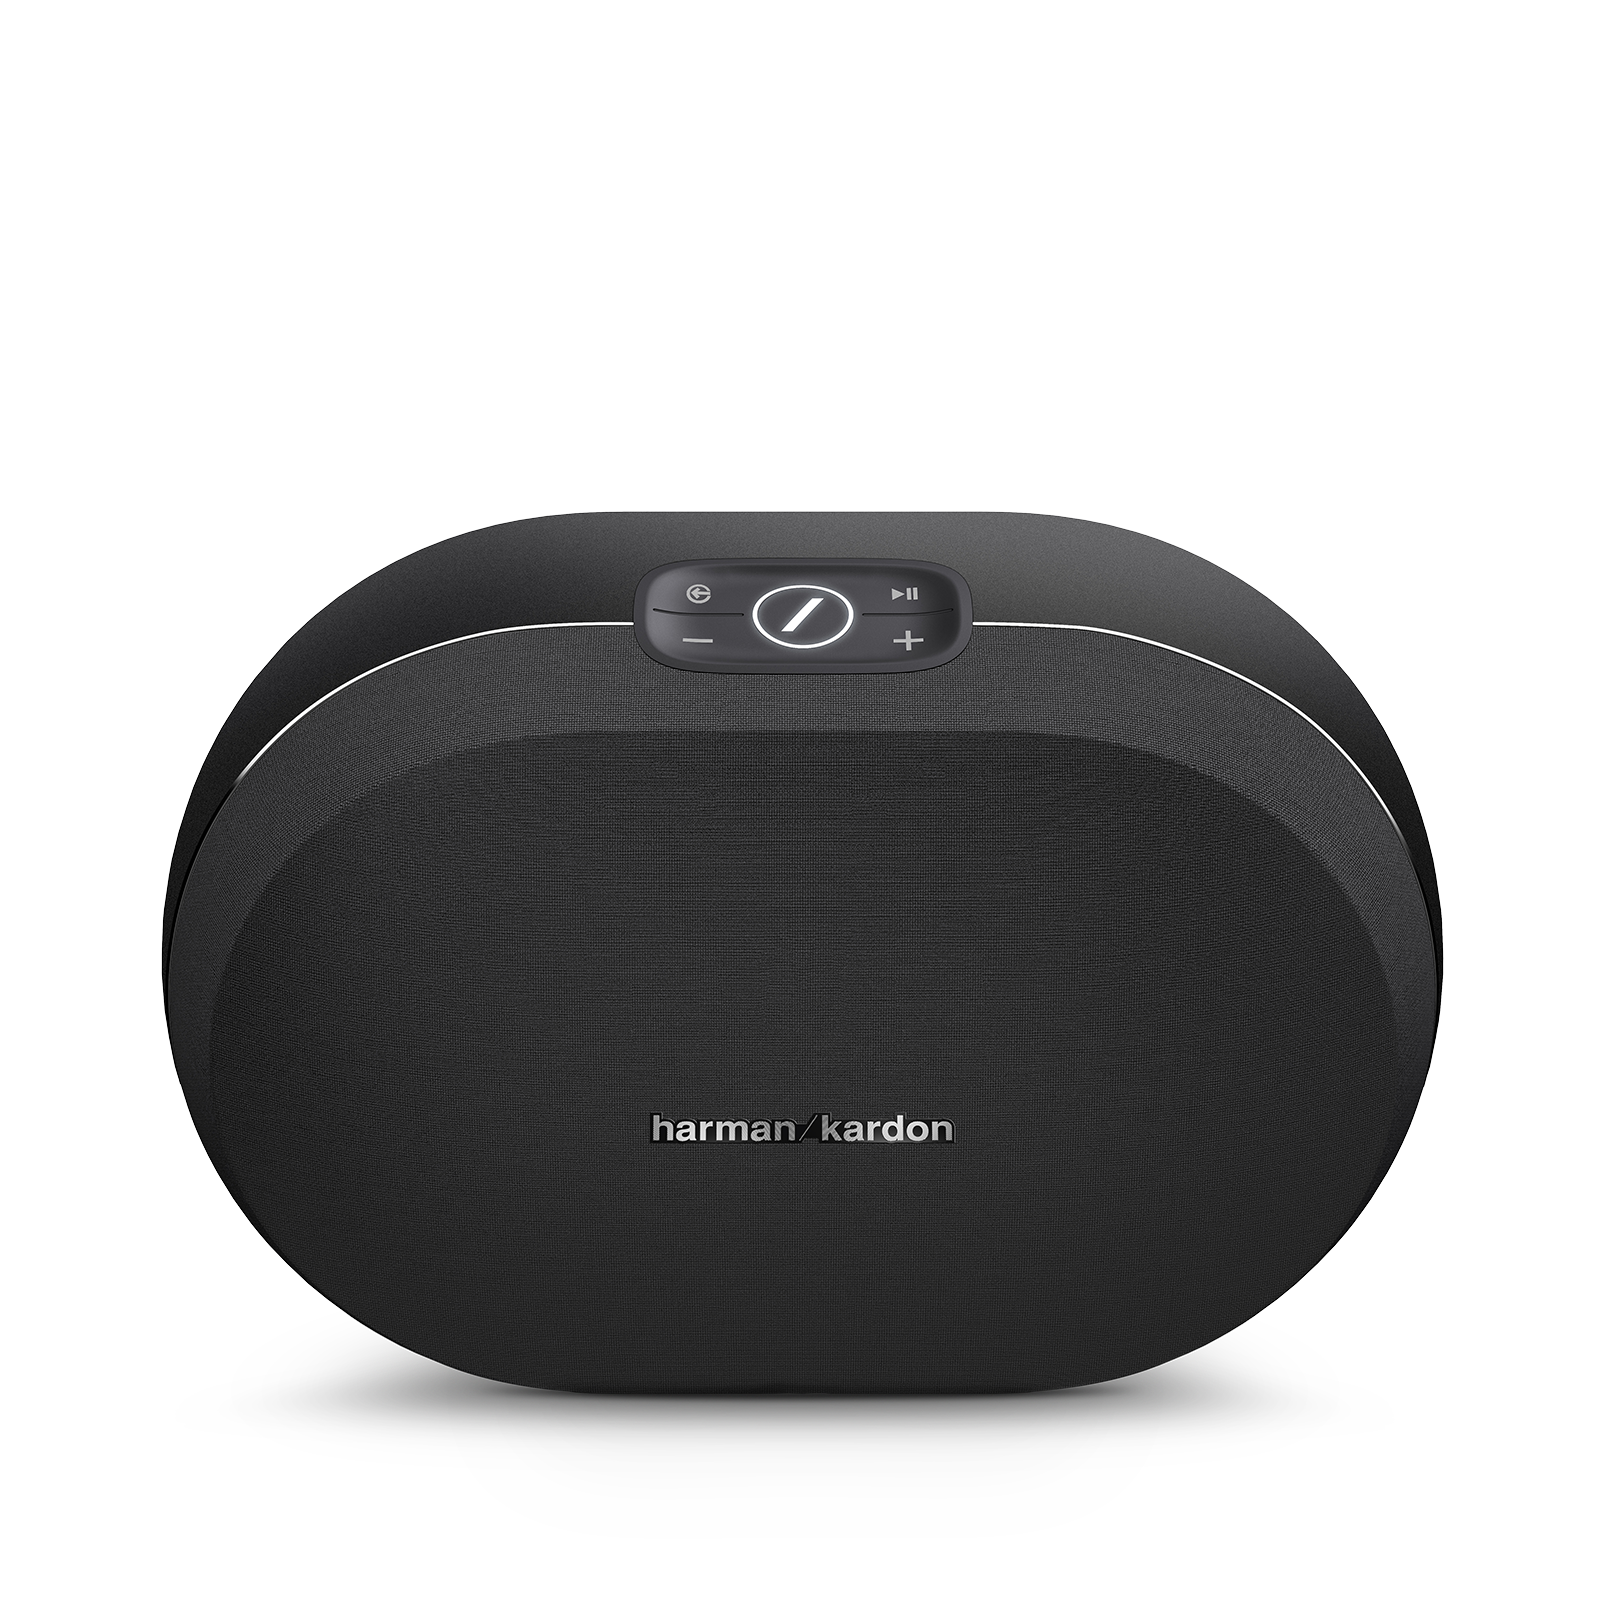 Omni 20 Plus - Black - Wireless HD stereo speaker - Detailshot 2